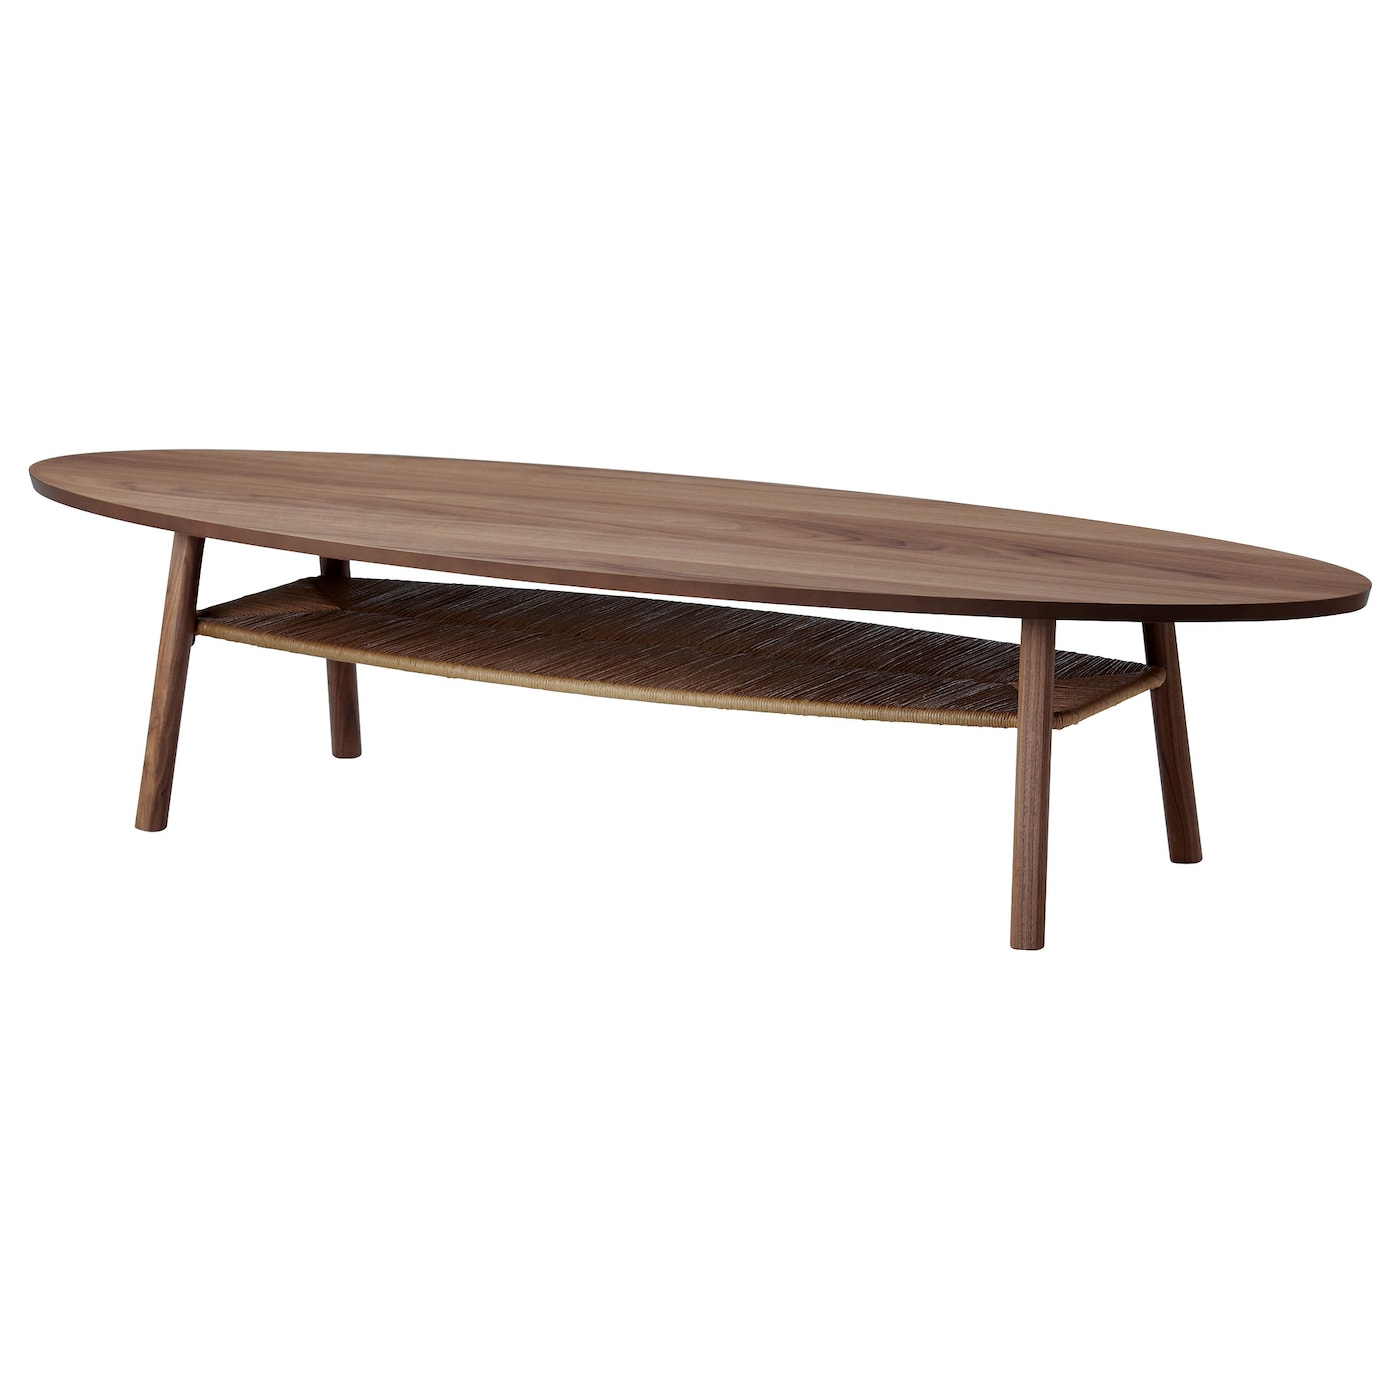 Stockholm coffee table walnut veneer 180x59 cm ikea for Table 70 cm hauteur